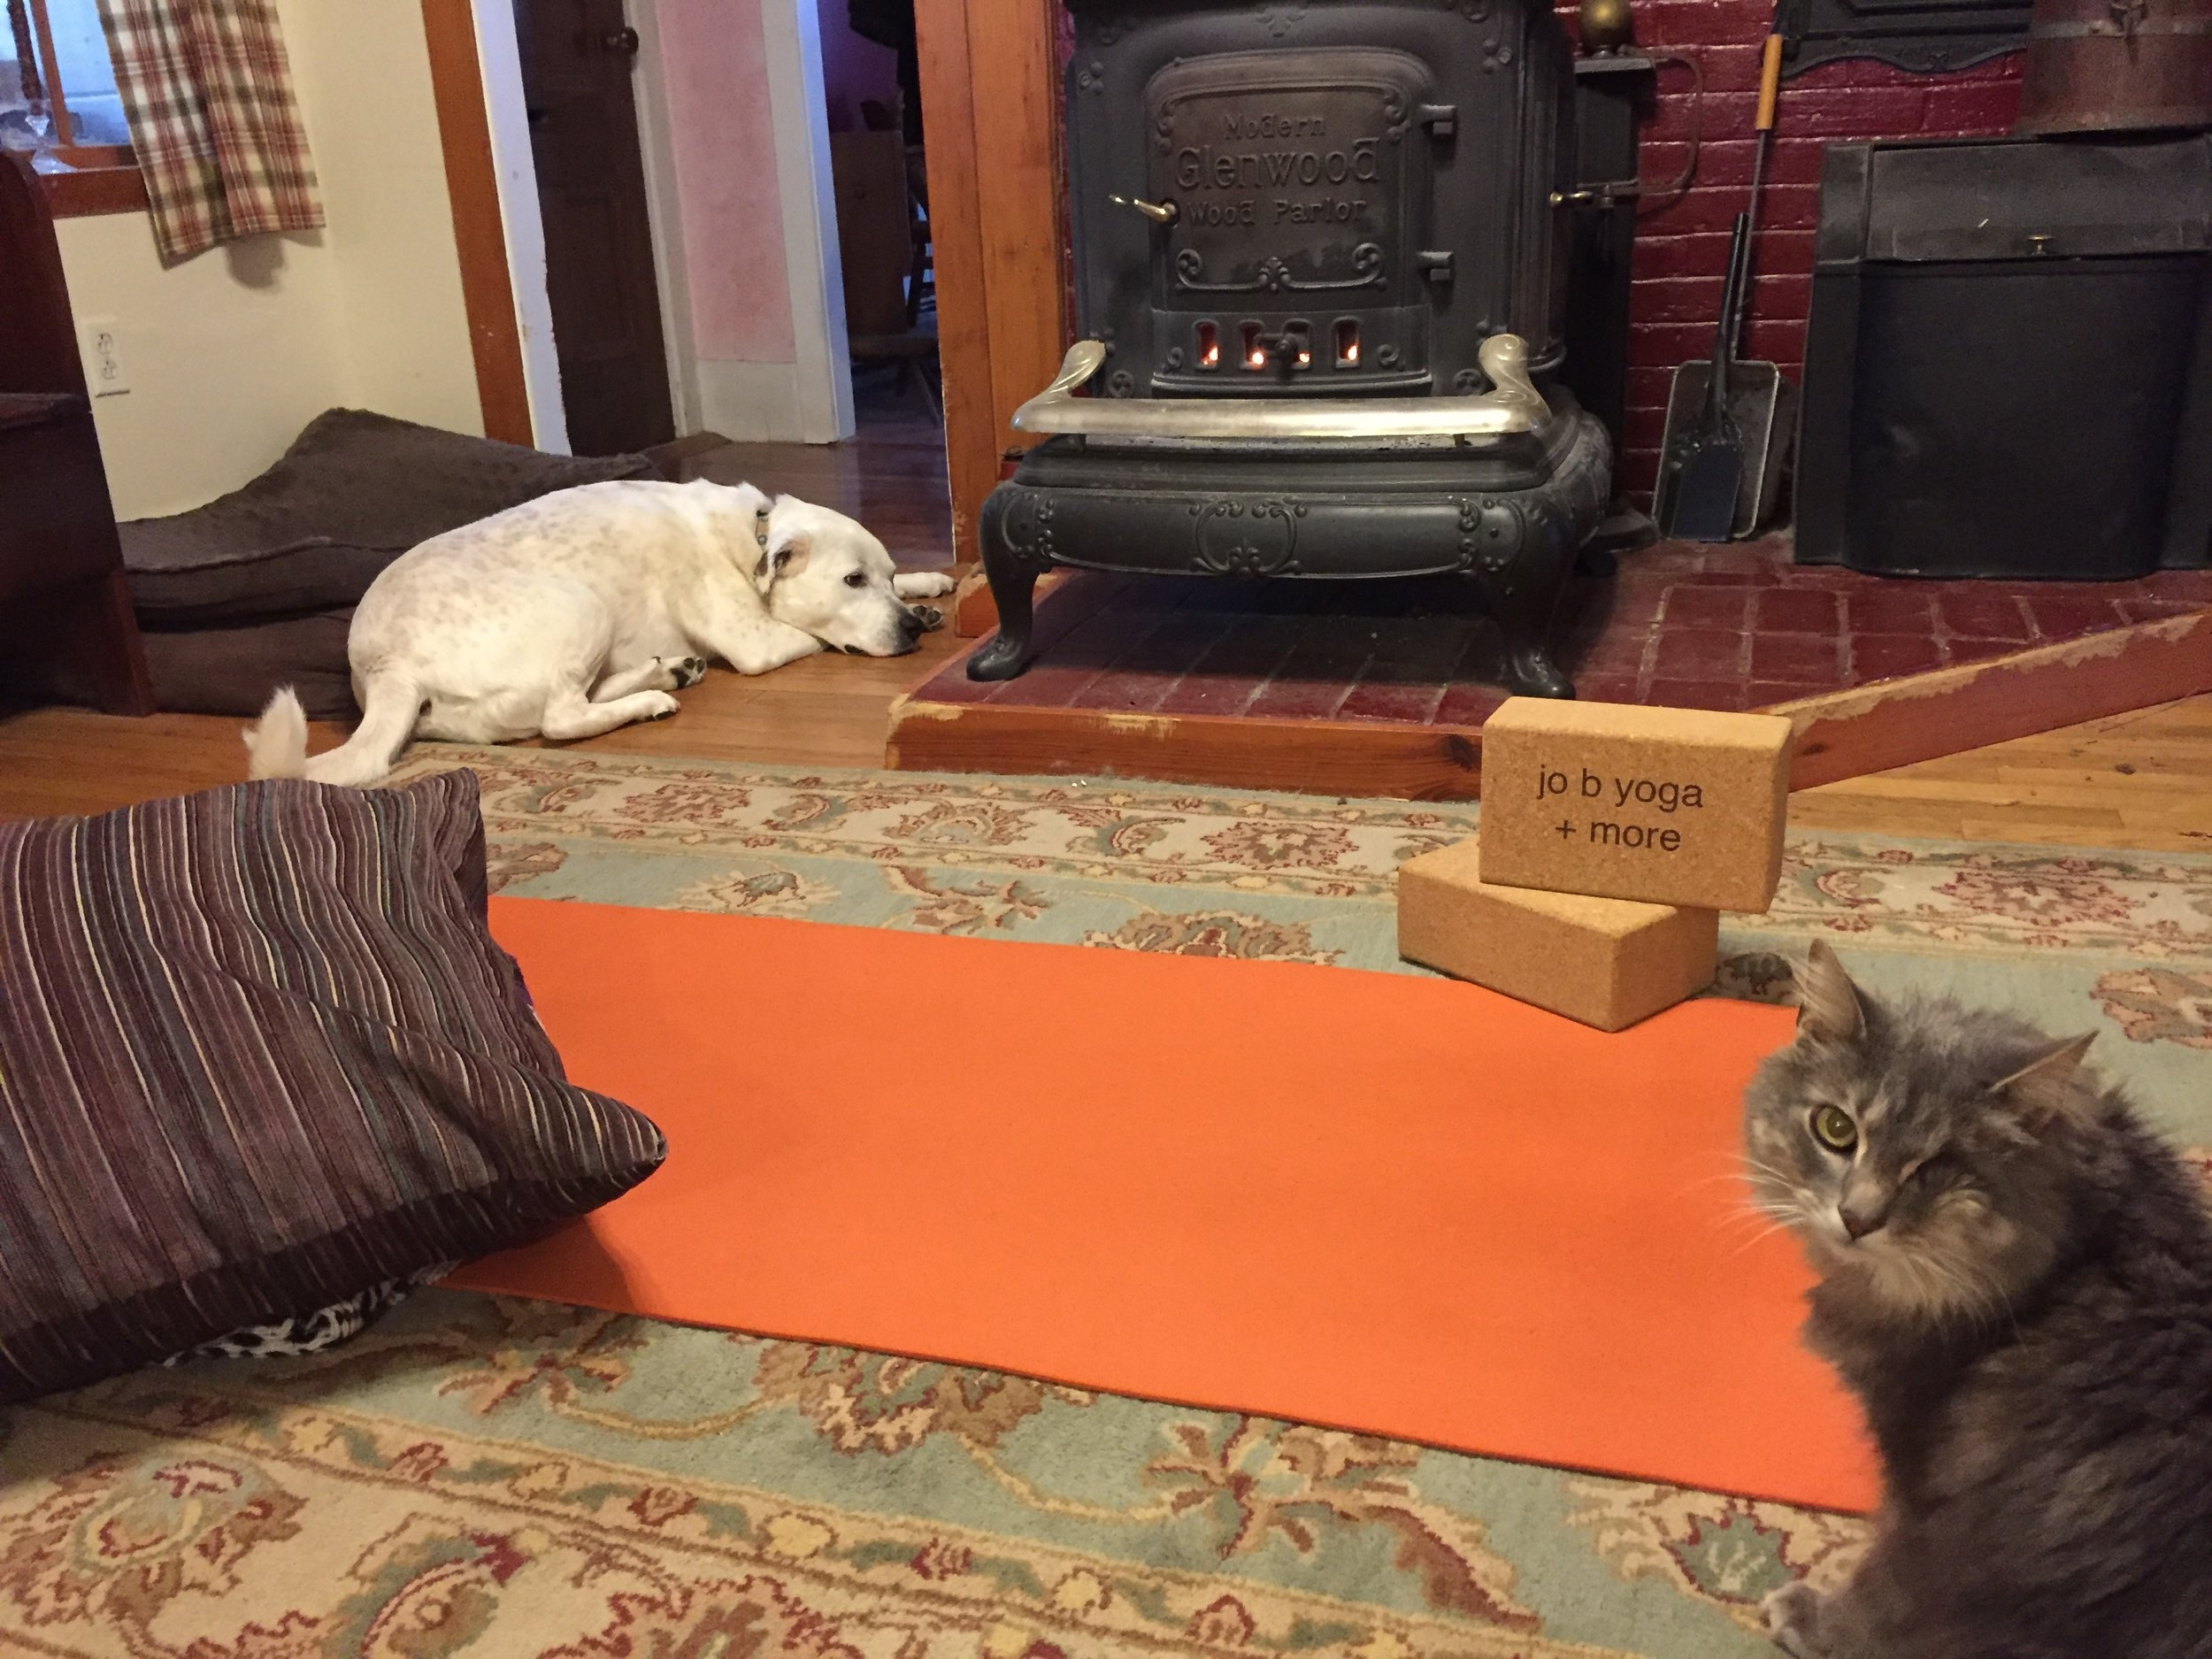 Mat, props, fire in the woodstove, frankincense oil in the water pot,yoga buddies ... time for home practice ;)